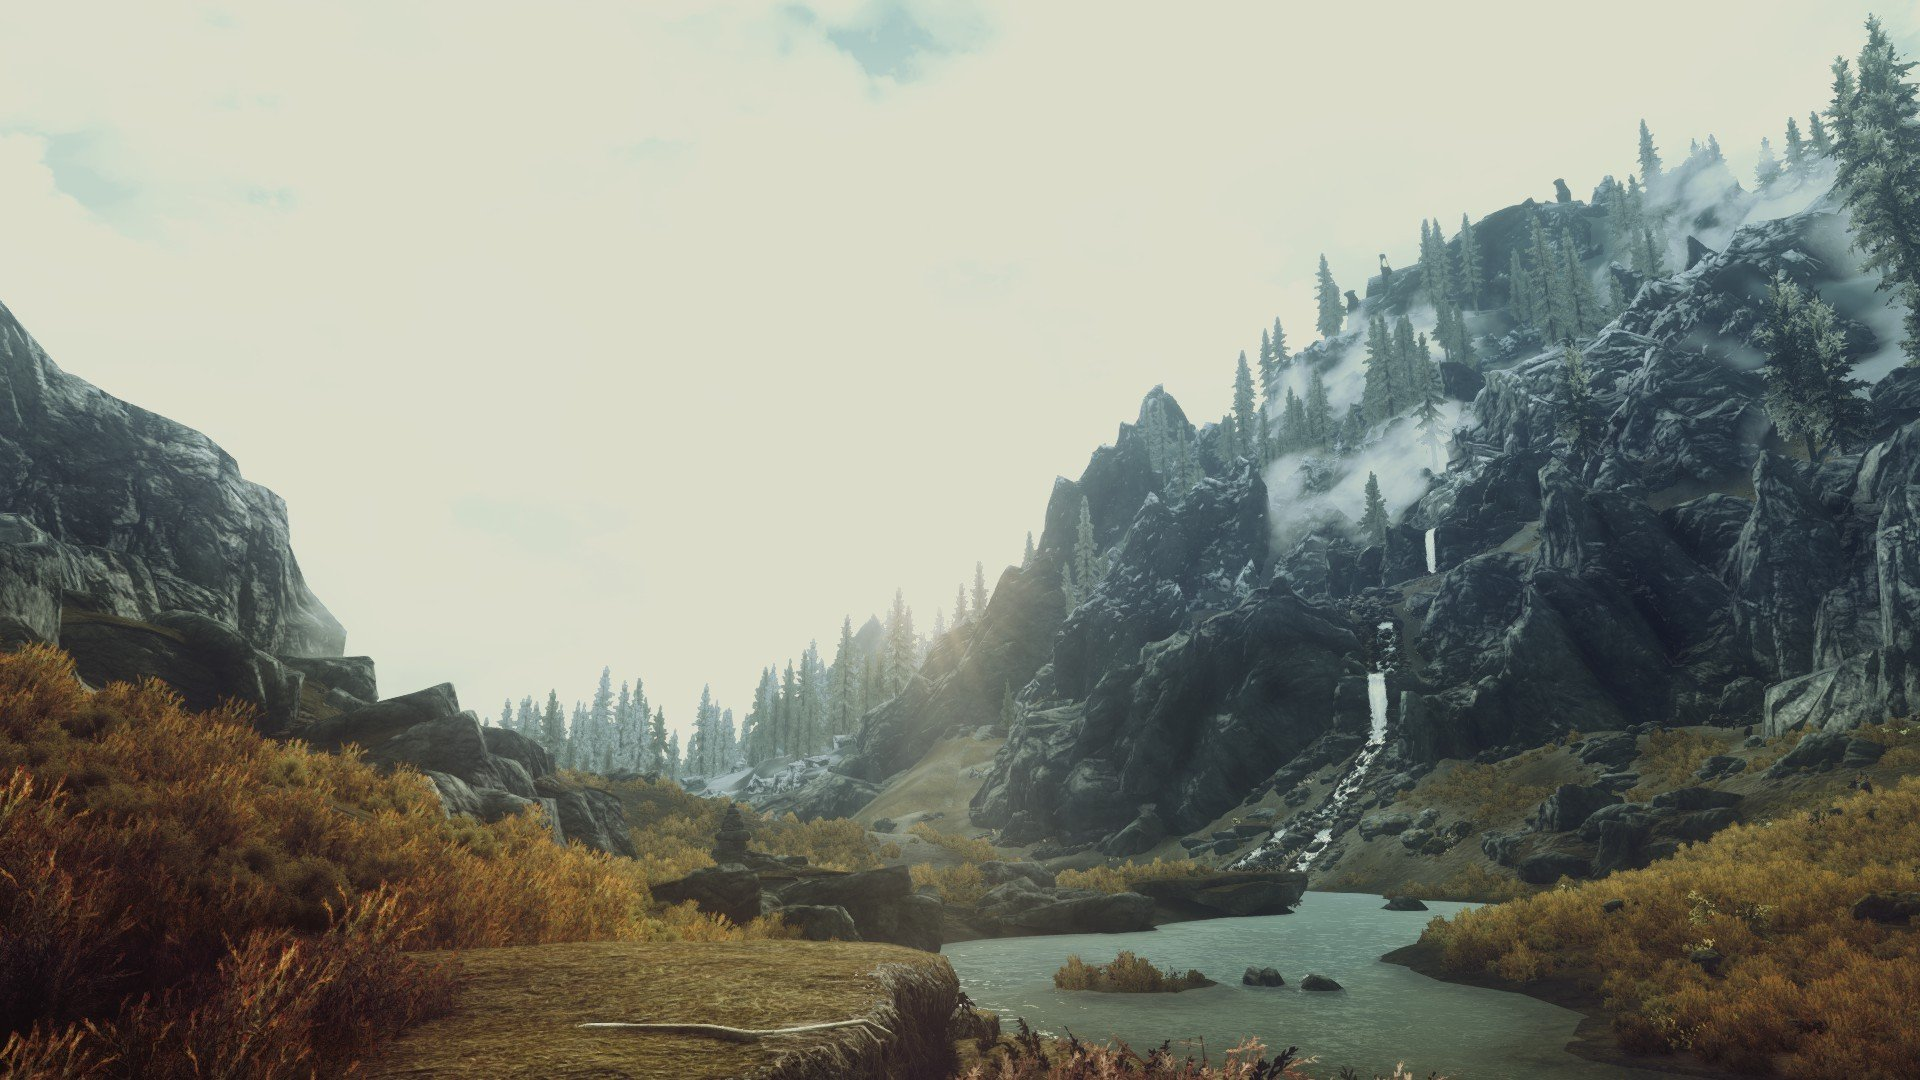 Skyrim Wallpaper 1920x1080 Wallpaper Ideas